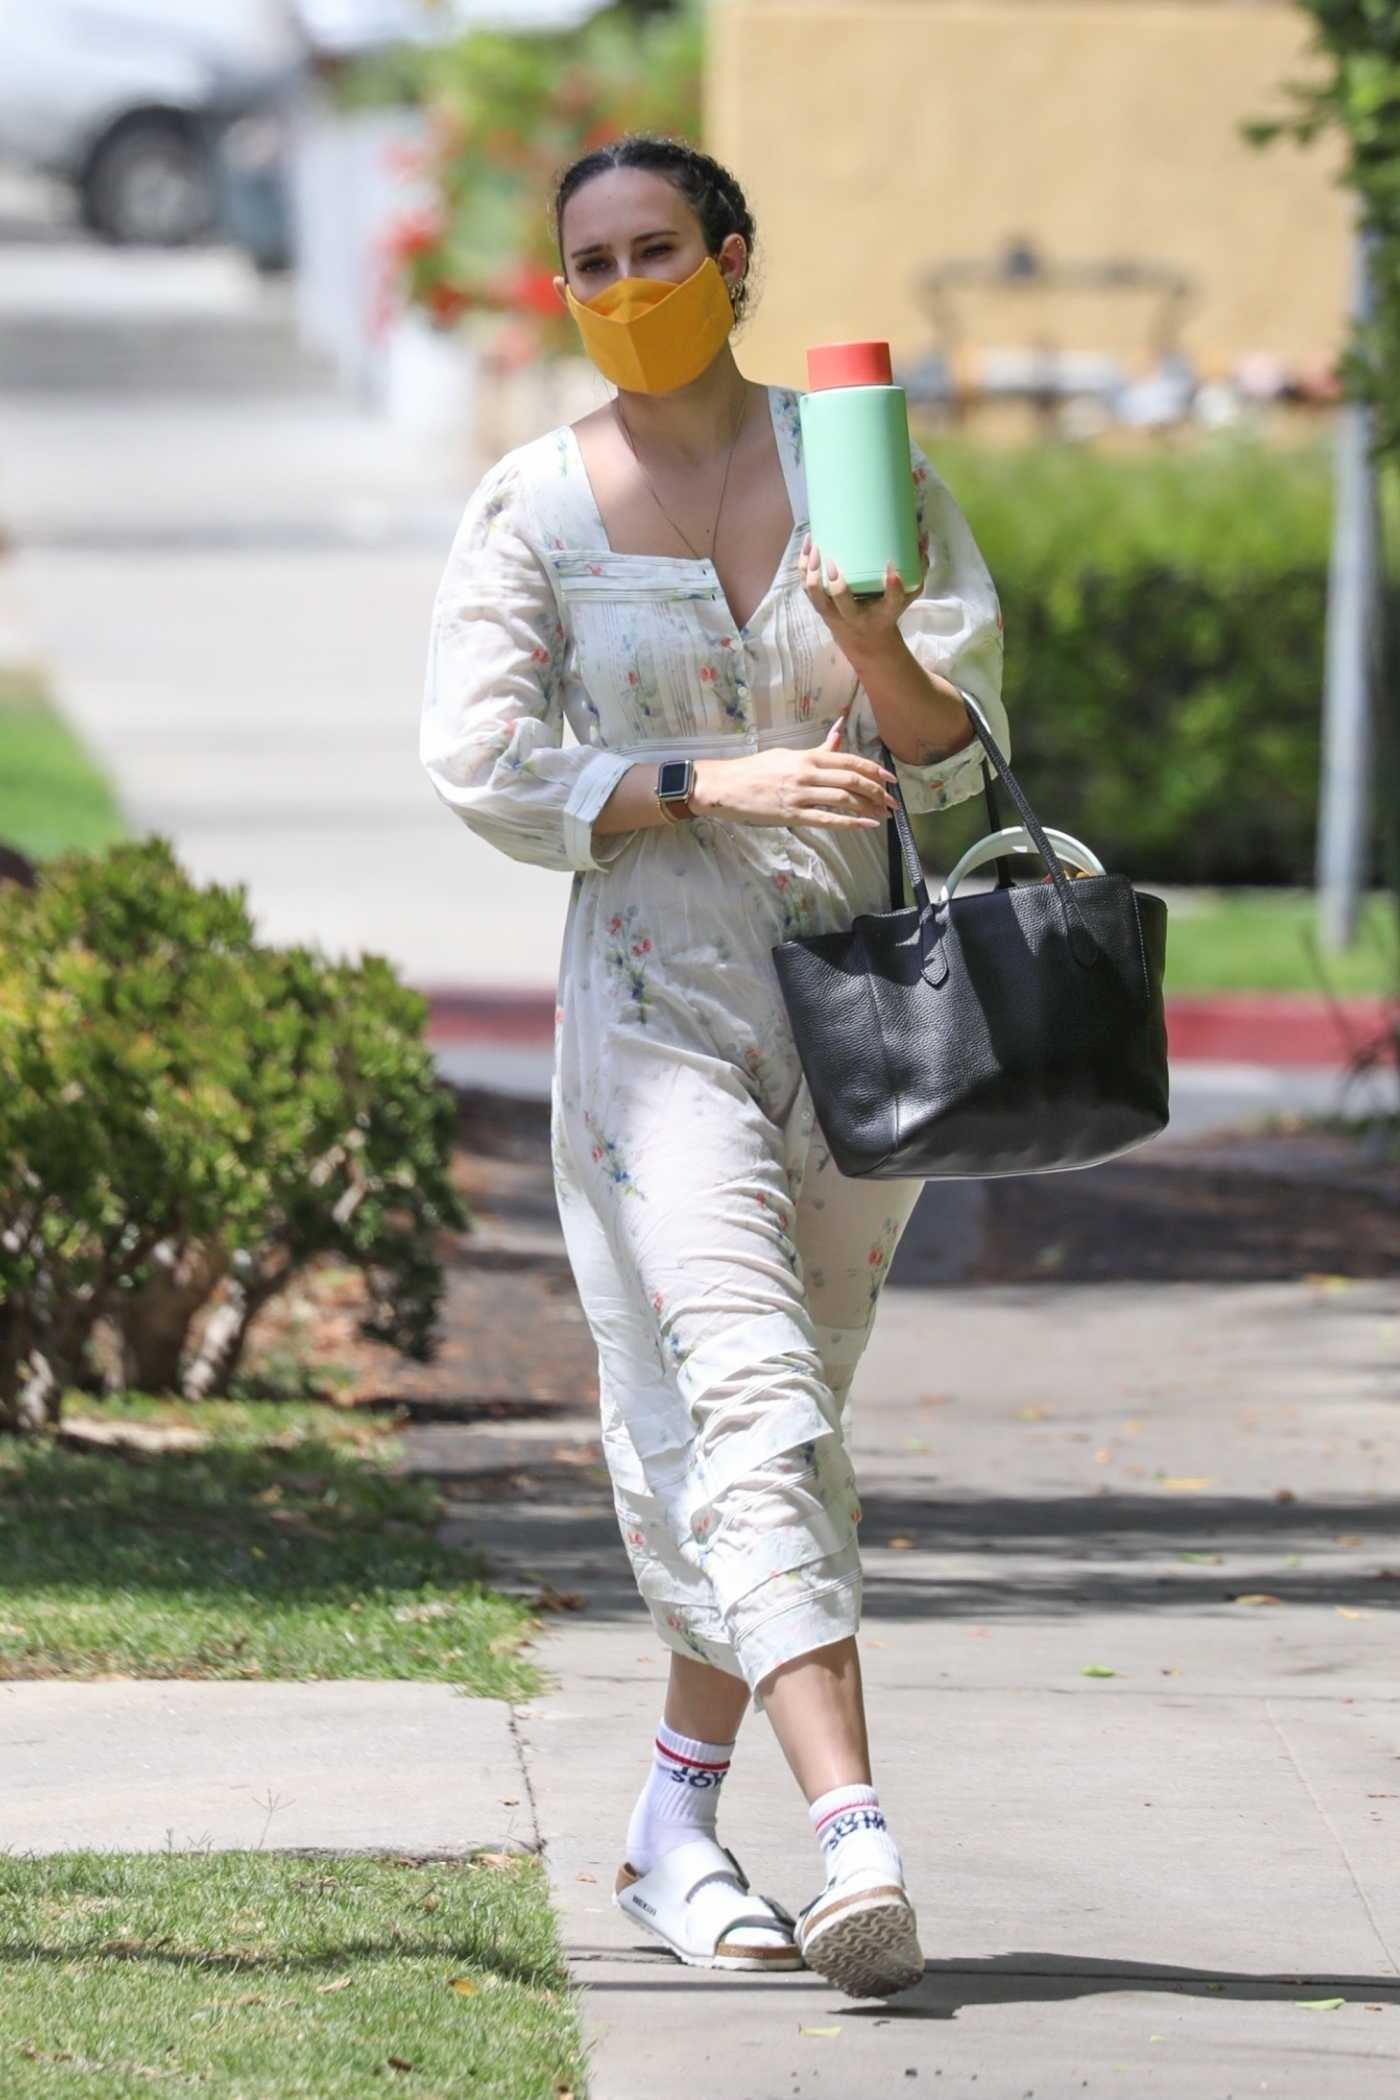 Rumer Willis in a White Floral Dress Was Seen Out in West Hollywood 05/20/2021